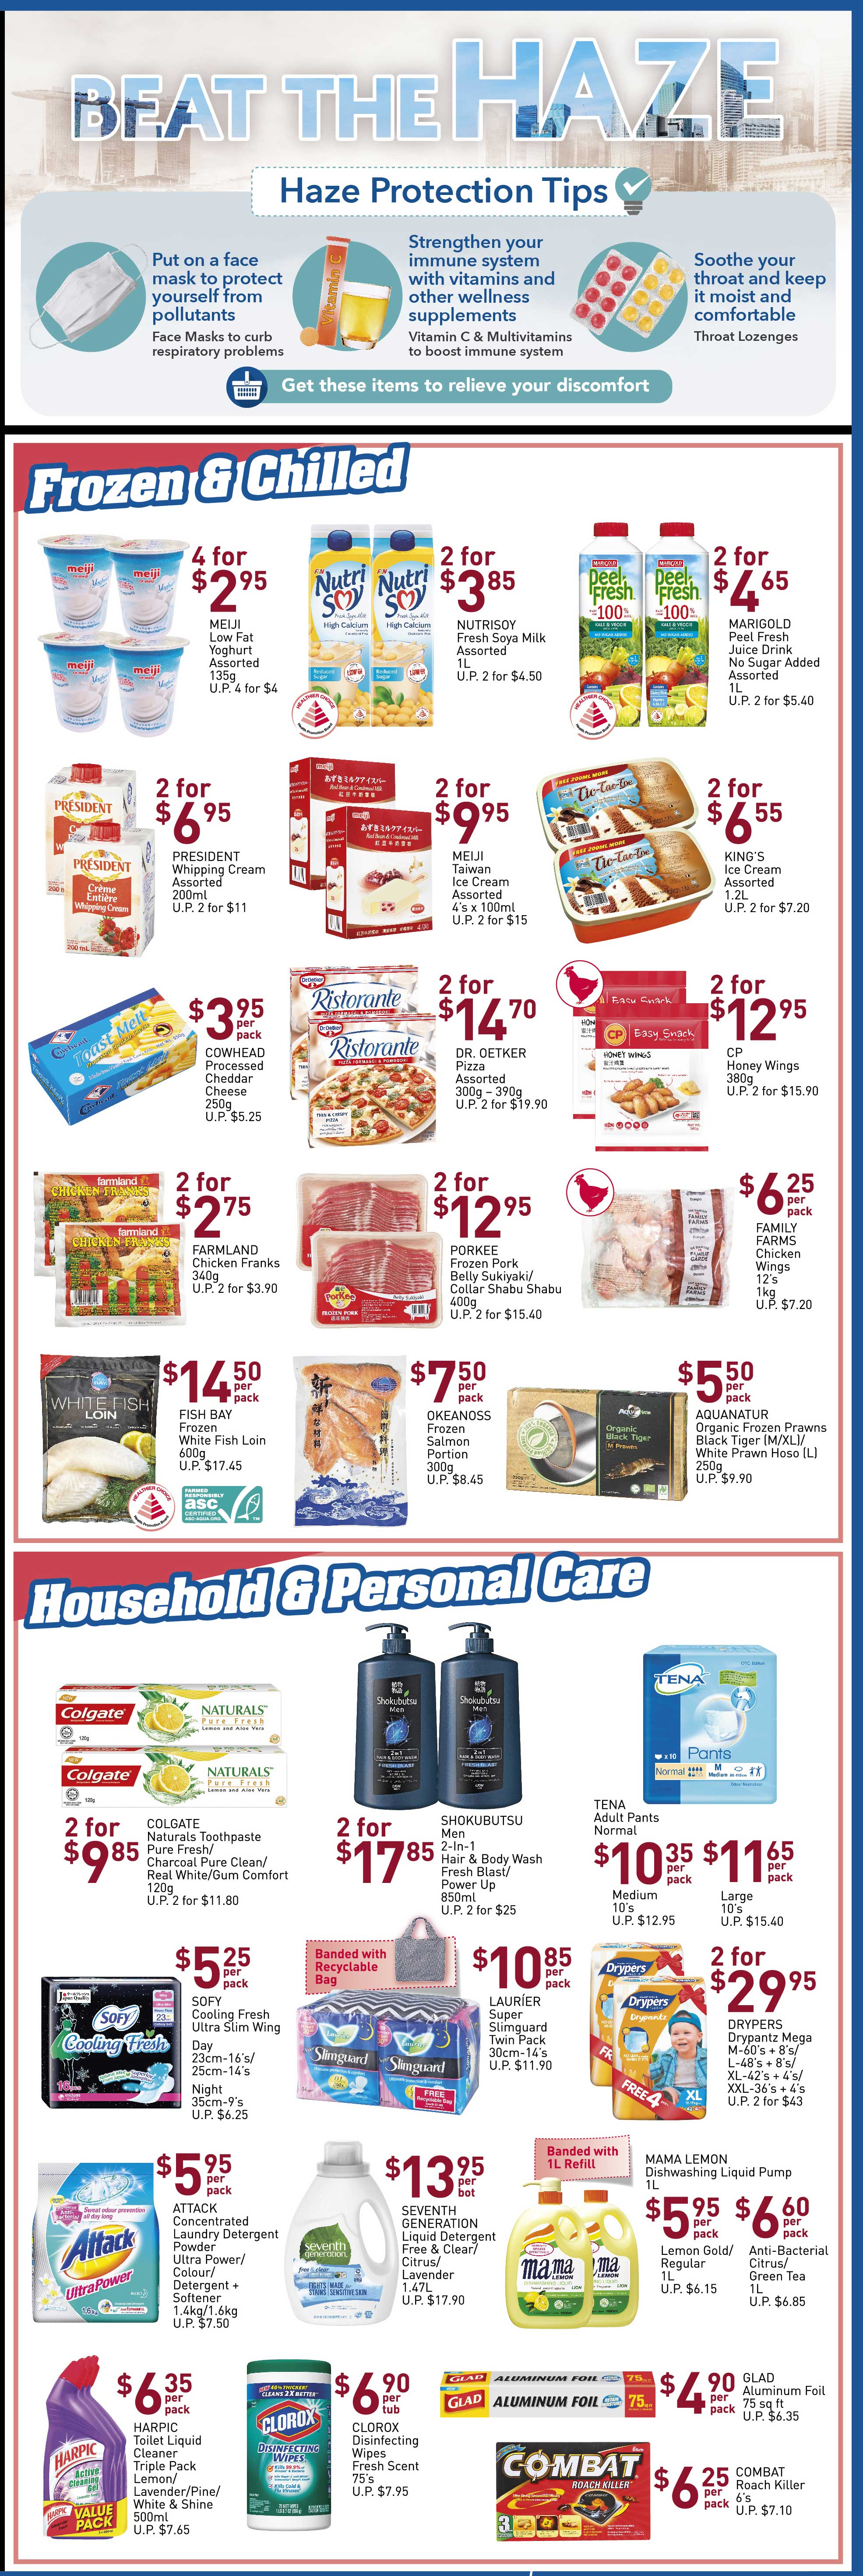 NTUC FairPrice Singapore Your Weekly Saver Promotion 19-25 Sep 2019 | Why Not Deals 2 & Promotions